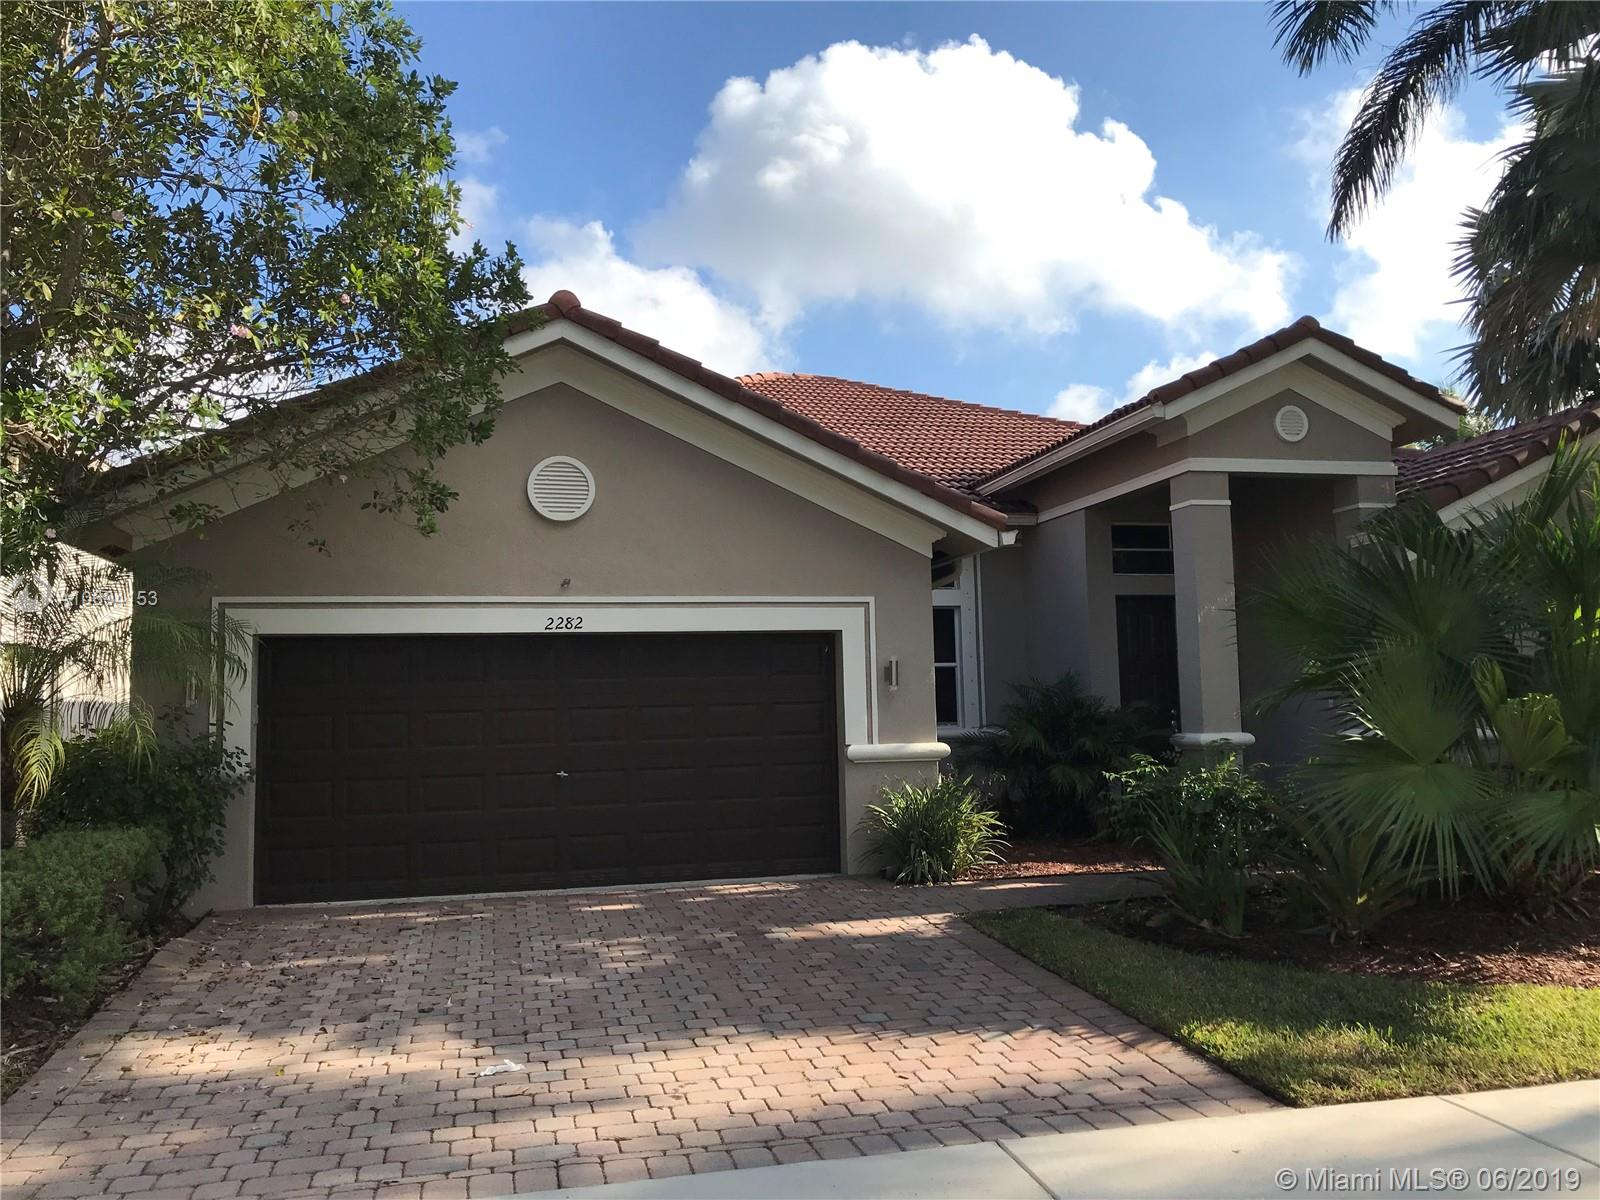 FABULOUS WESTON HILLS COUNTRY CLUB GEM! 4 BEDROOMS PLUS DEN! WATERFRONT! HOME IS VACANT. Easy to show. This property will not last.